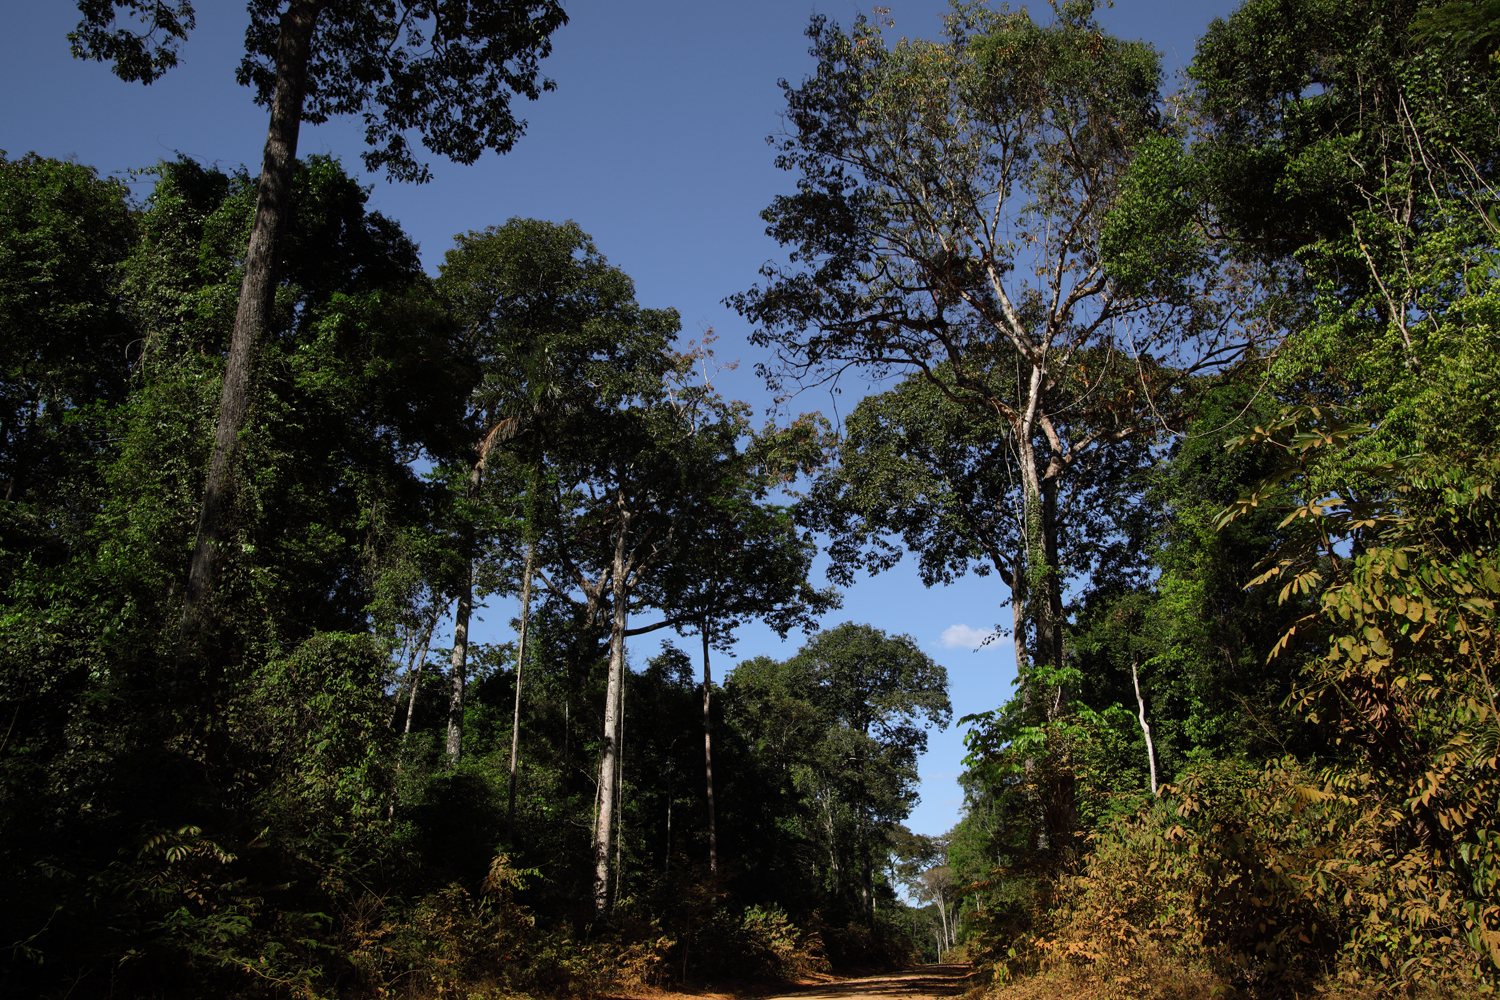 Roads-of-Amazonia-2-copy.jpg